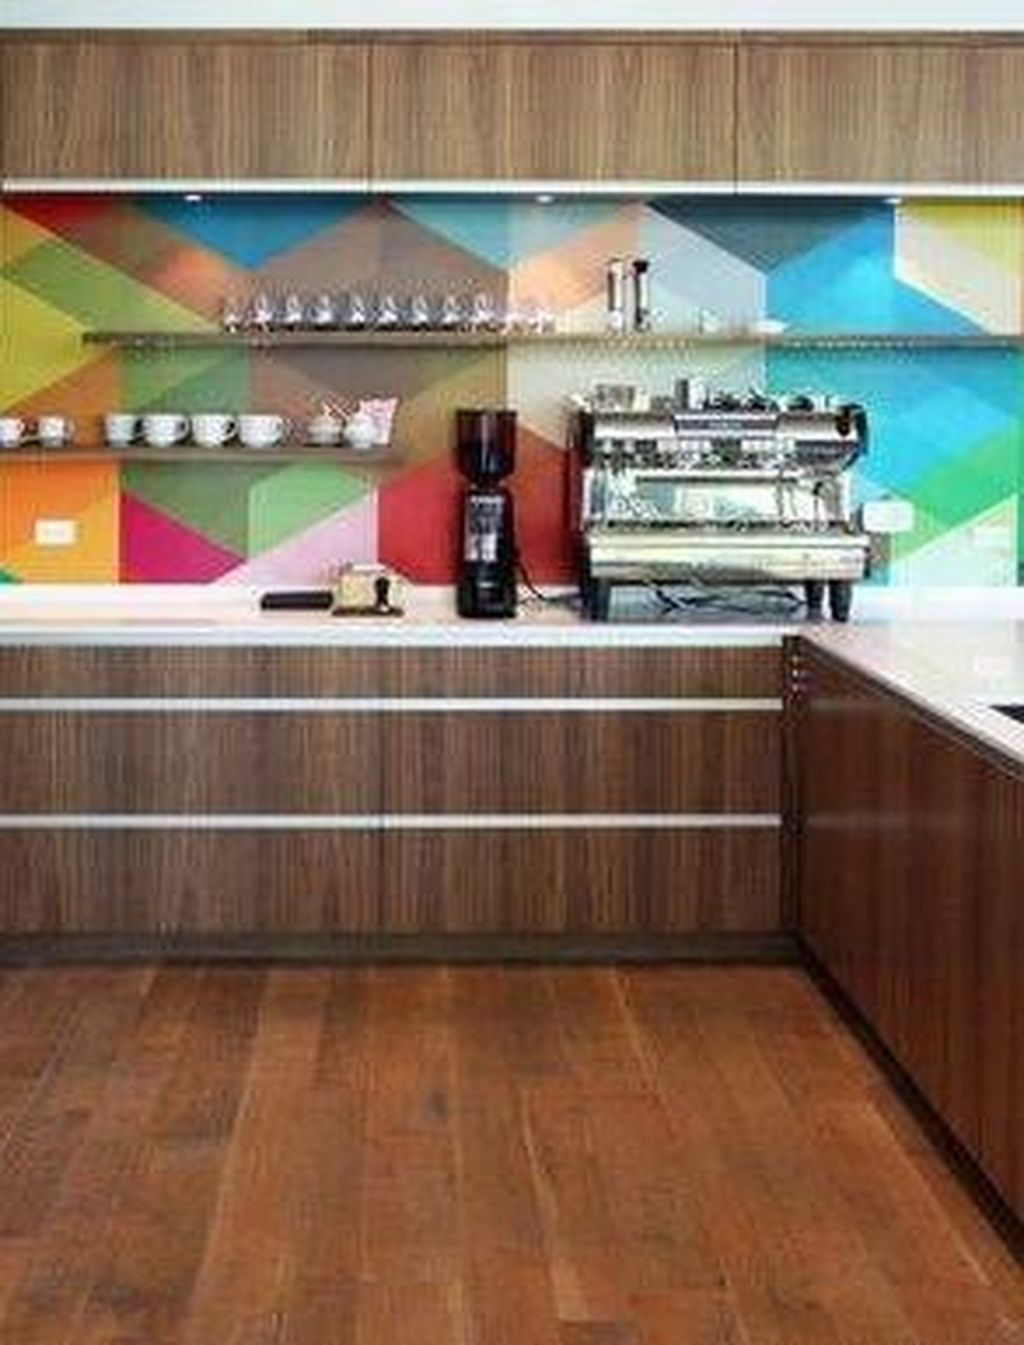 42 Adorable Rainbow Colorful Kitchens Design Ideas To Looks More Awesome Decorkeun